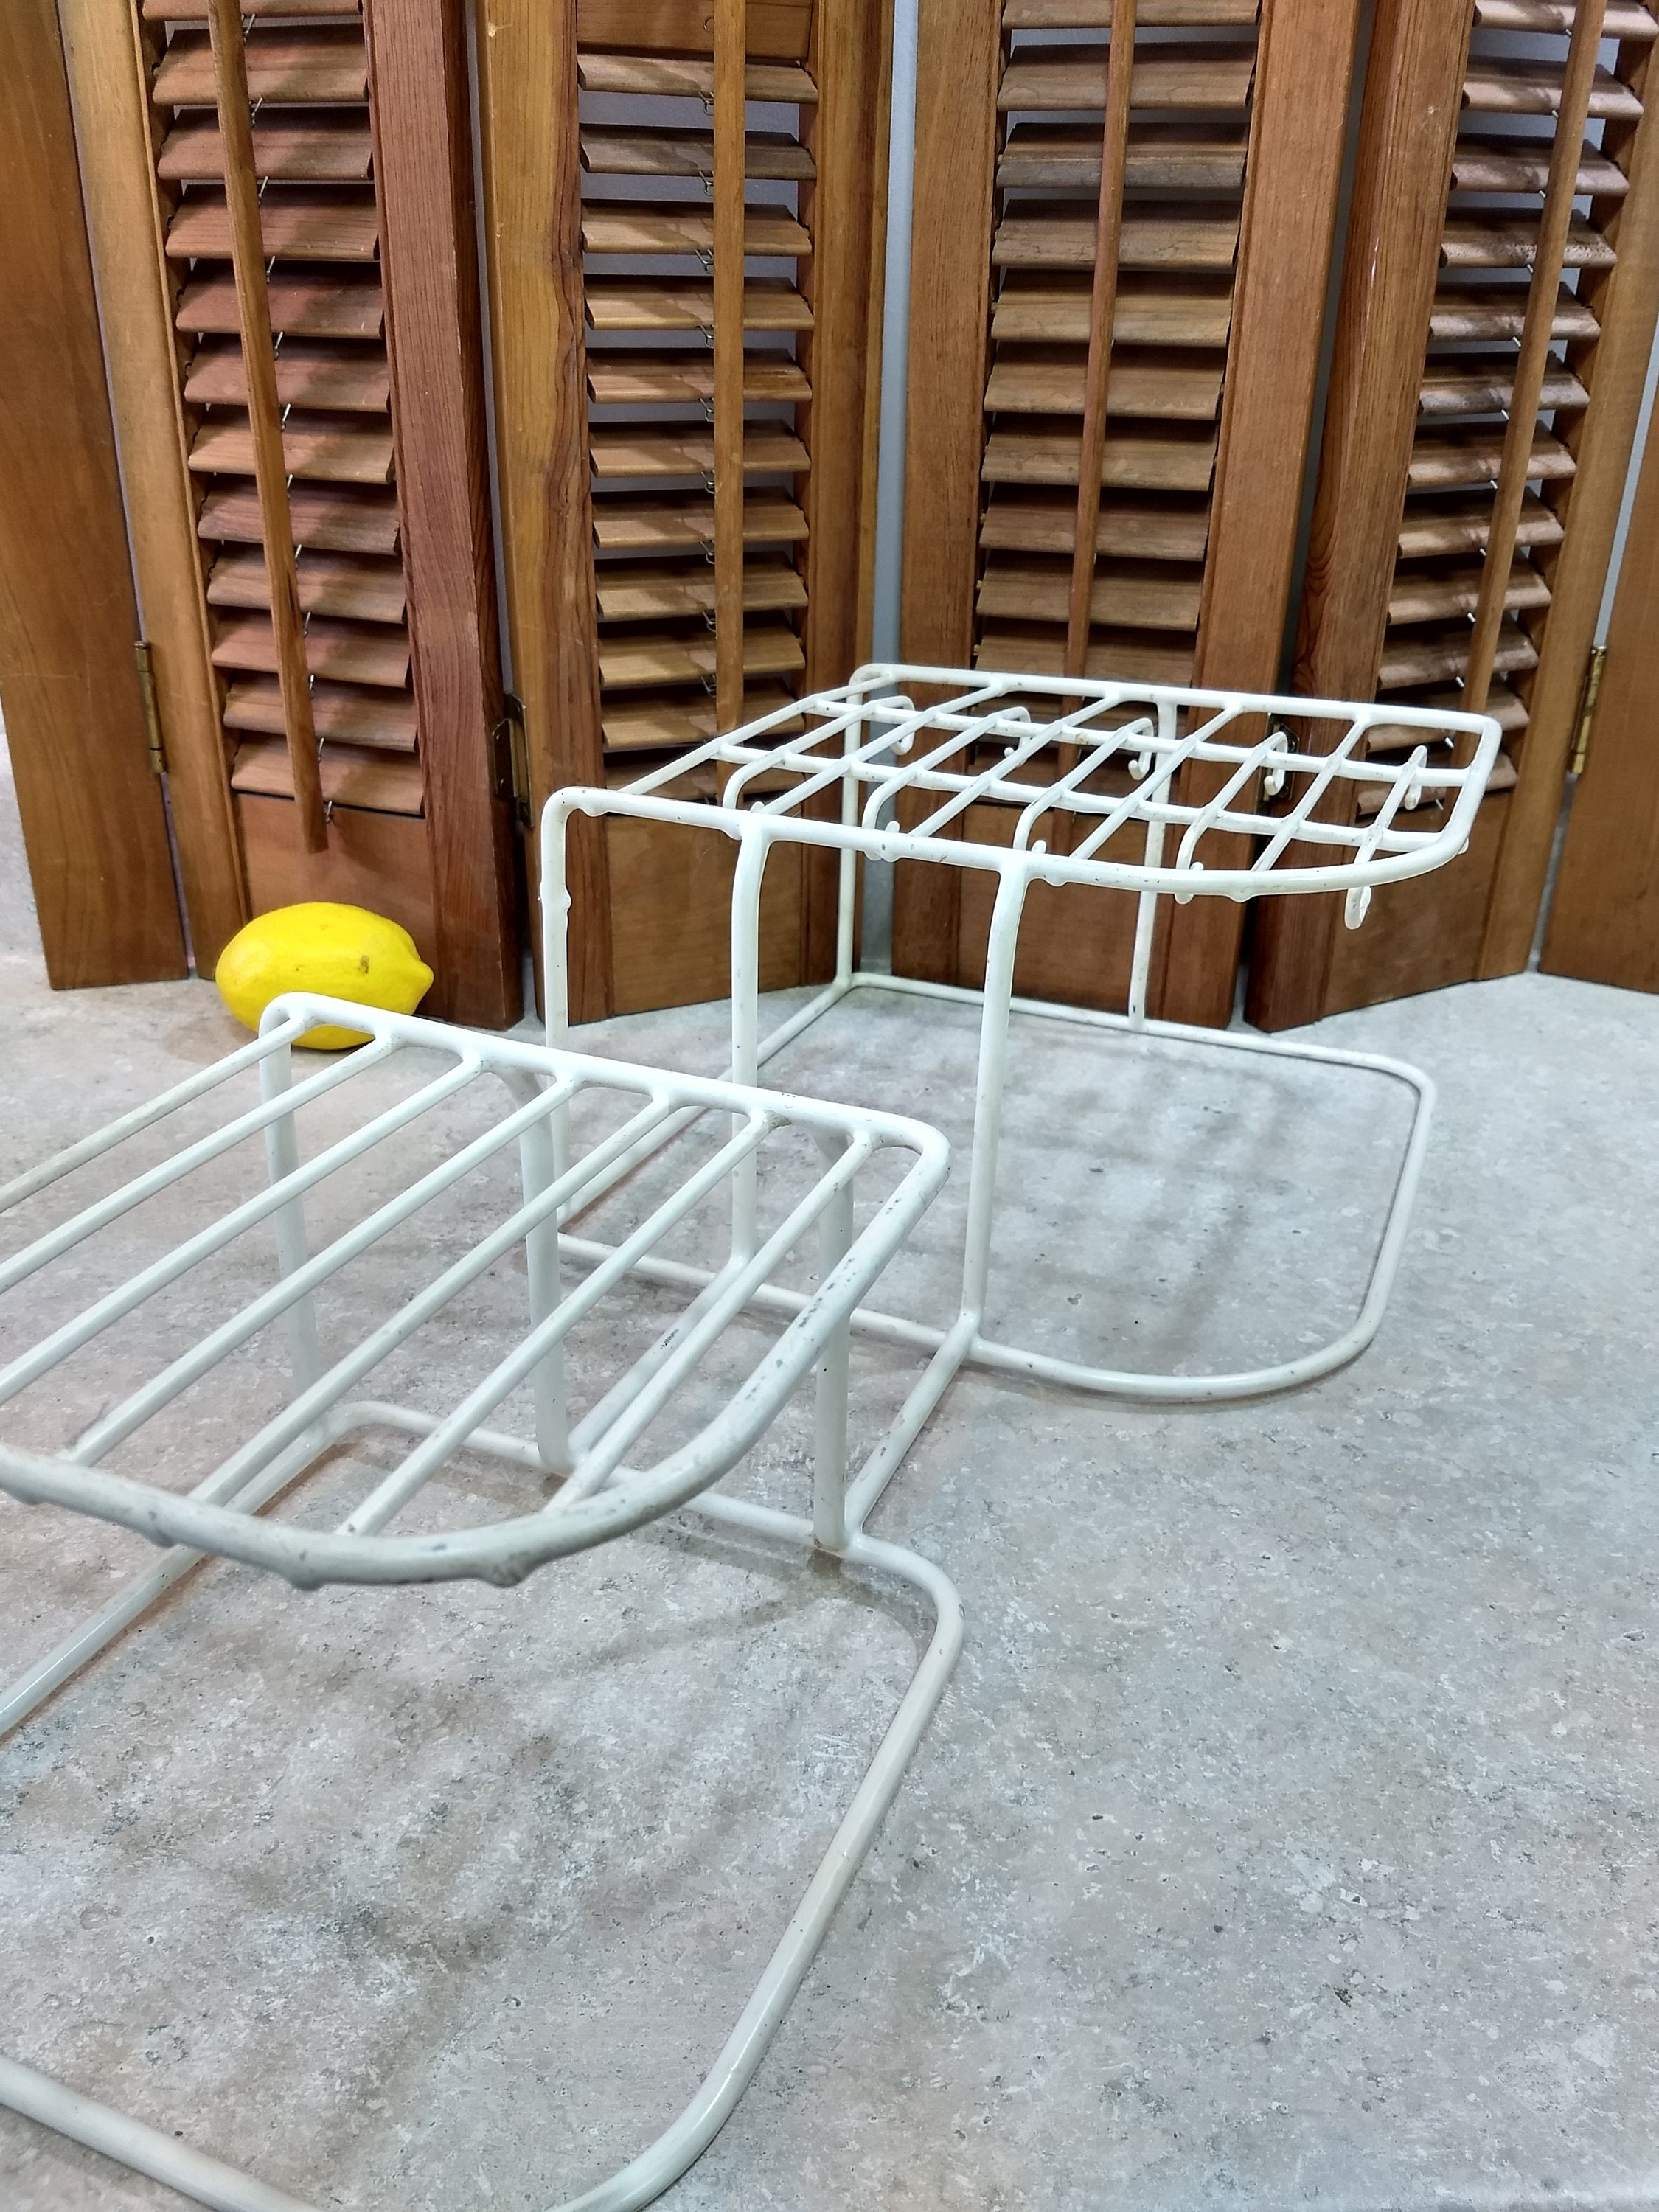 Rubbermaid White Dish RackMid Century Rubber Coated Wire Kitchen ...